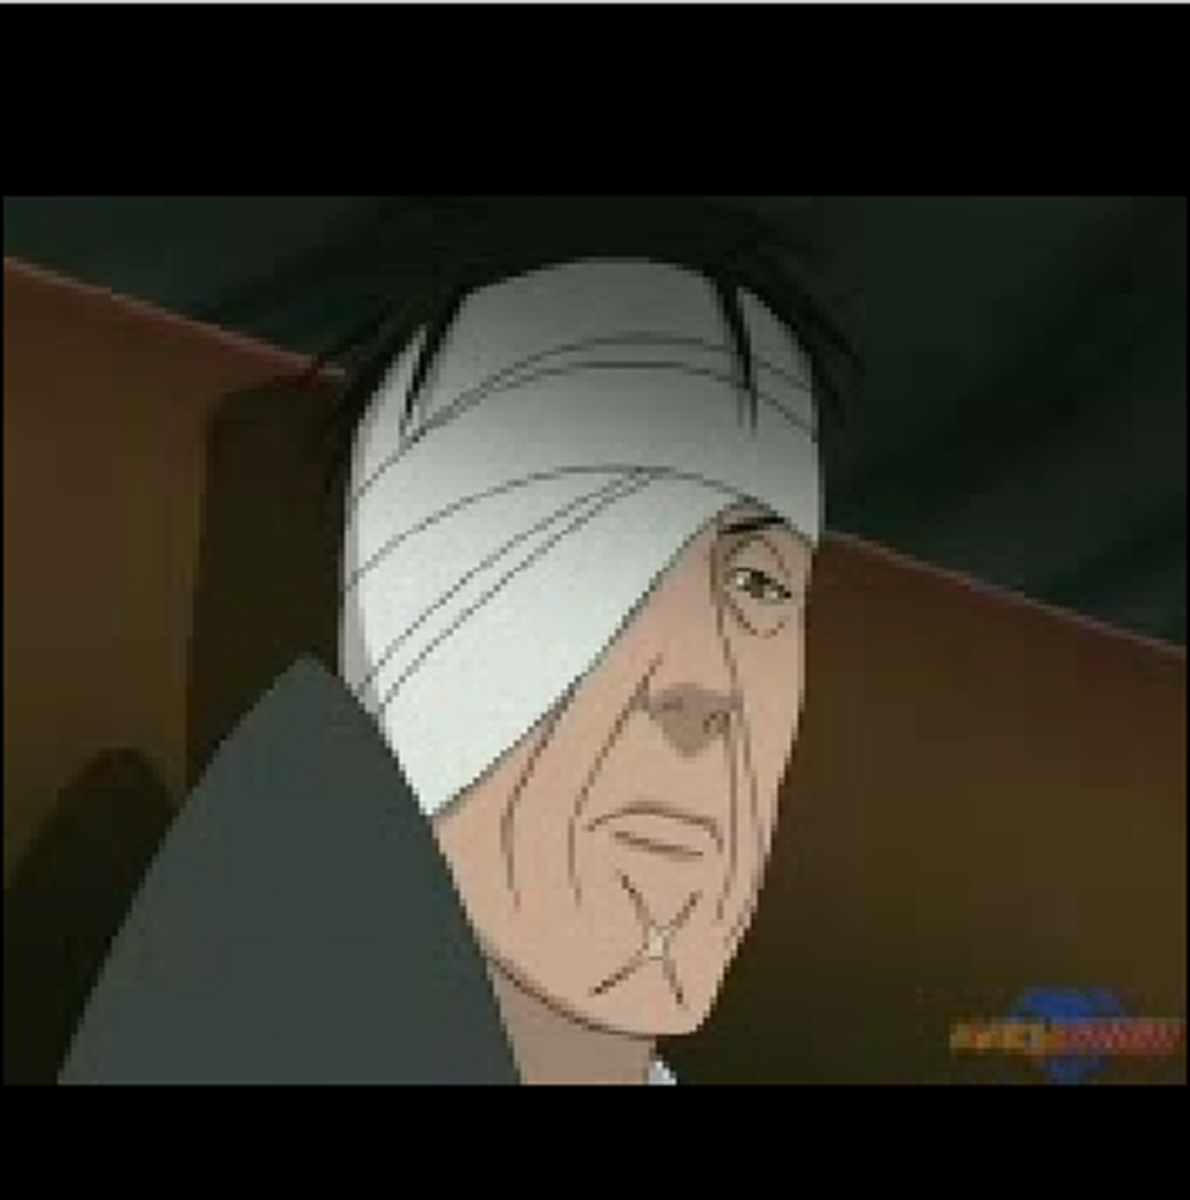 Film Anime Naruto Episode Danzo Hokage Bahasa Indonesia